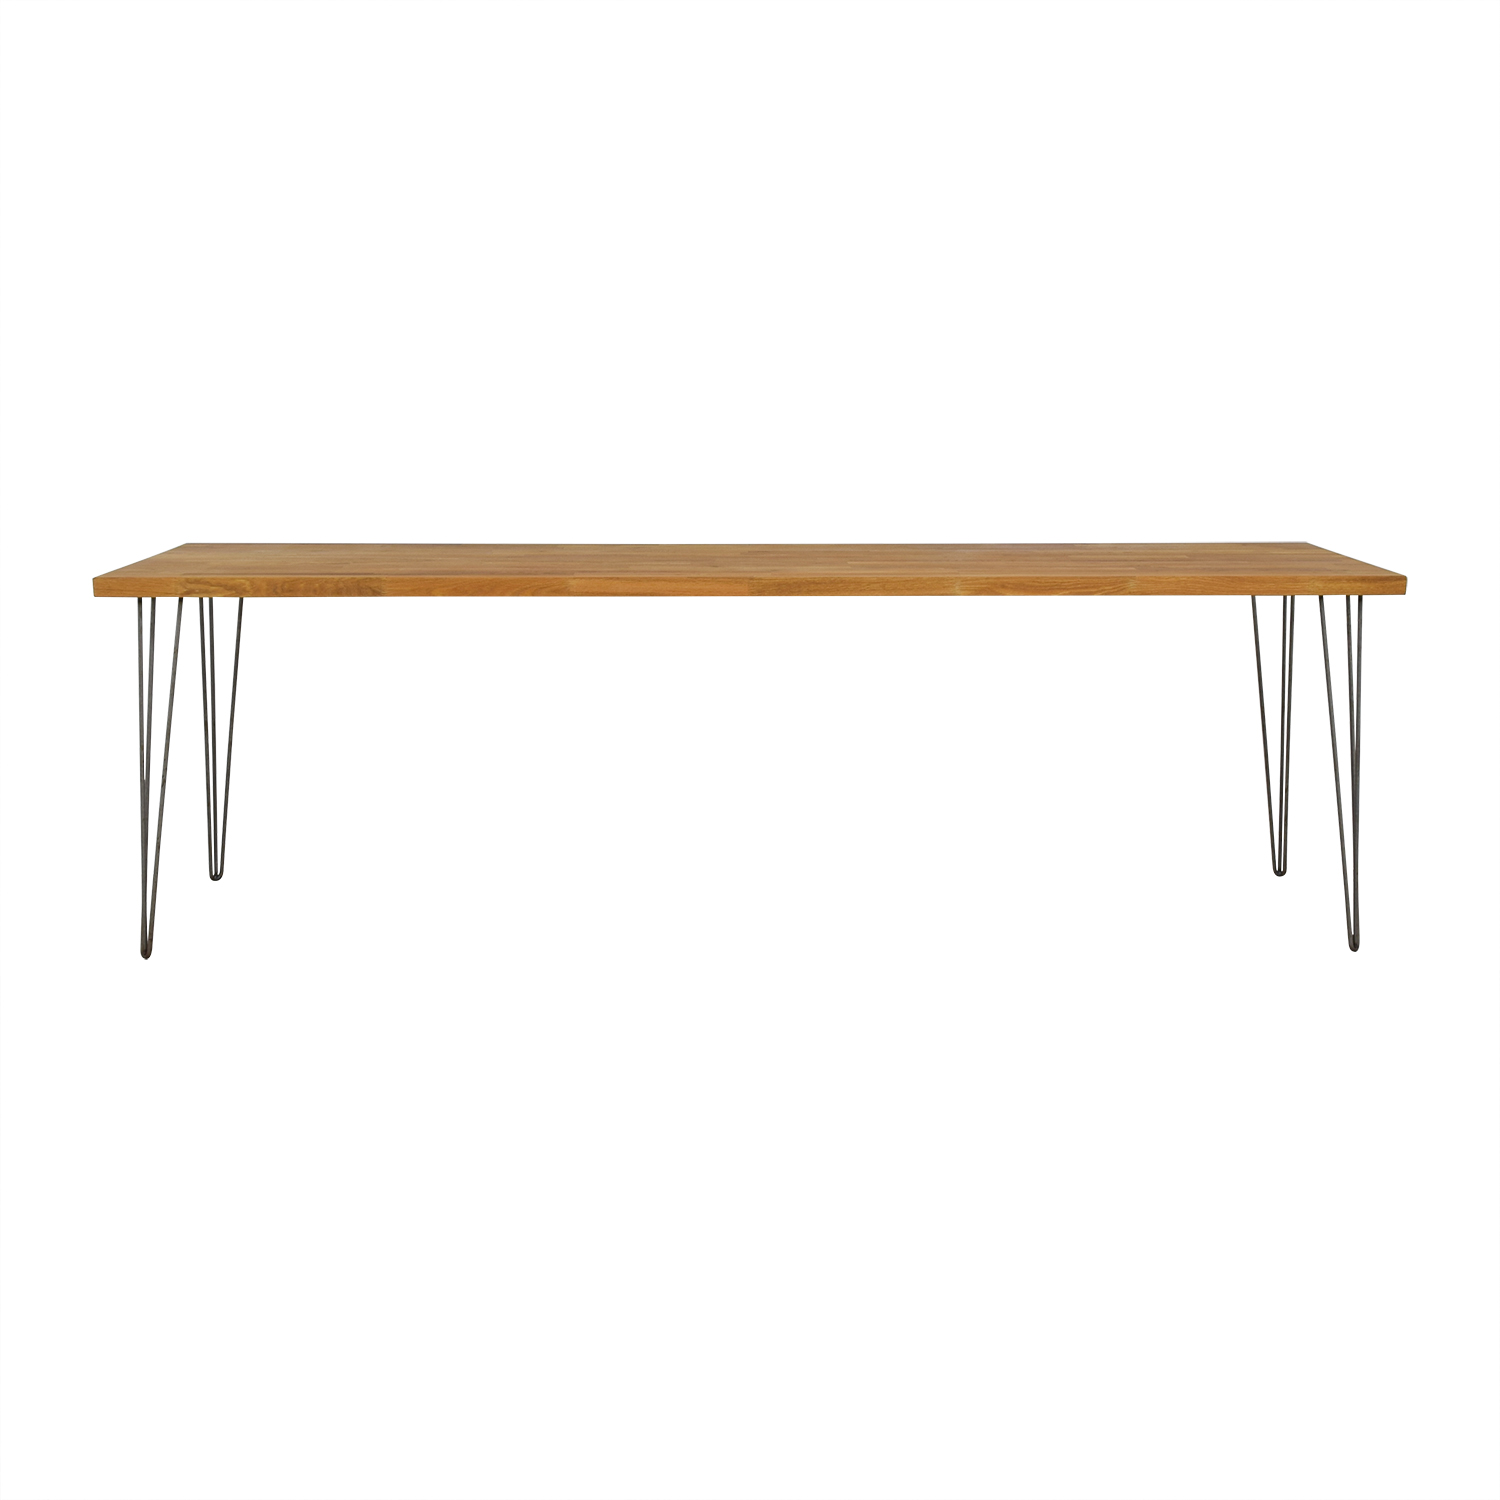 Custom Hazelnut Wood Table With Triangular Steel Legs for sale